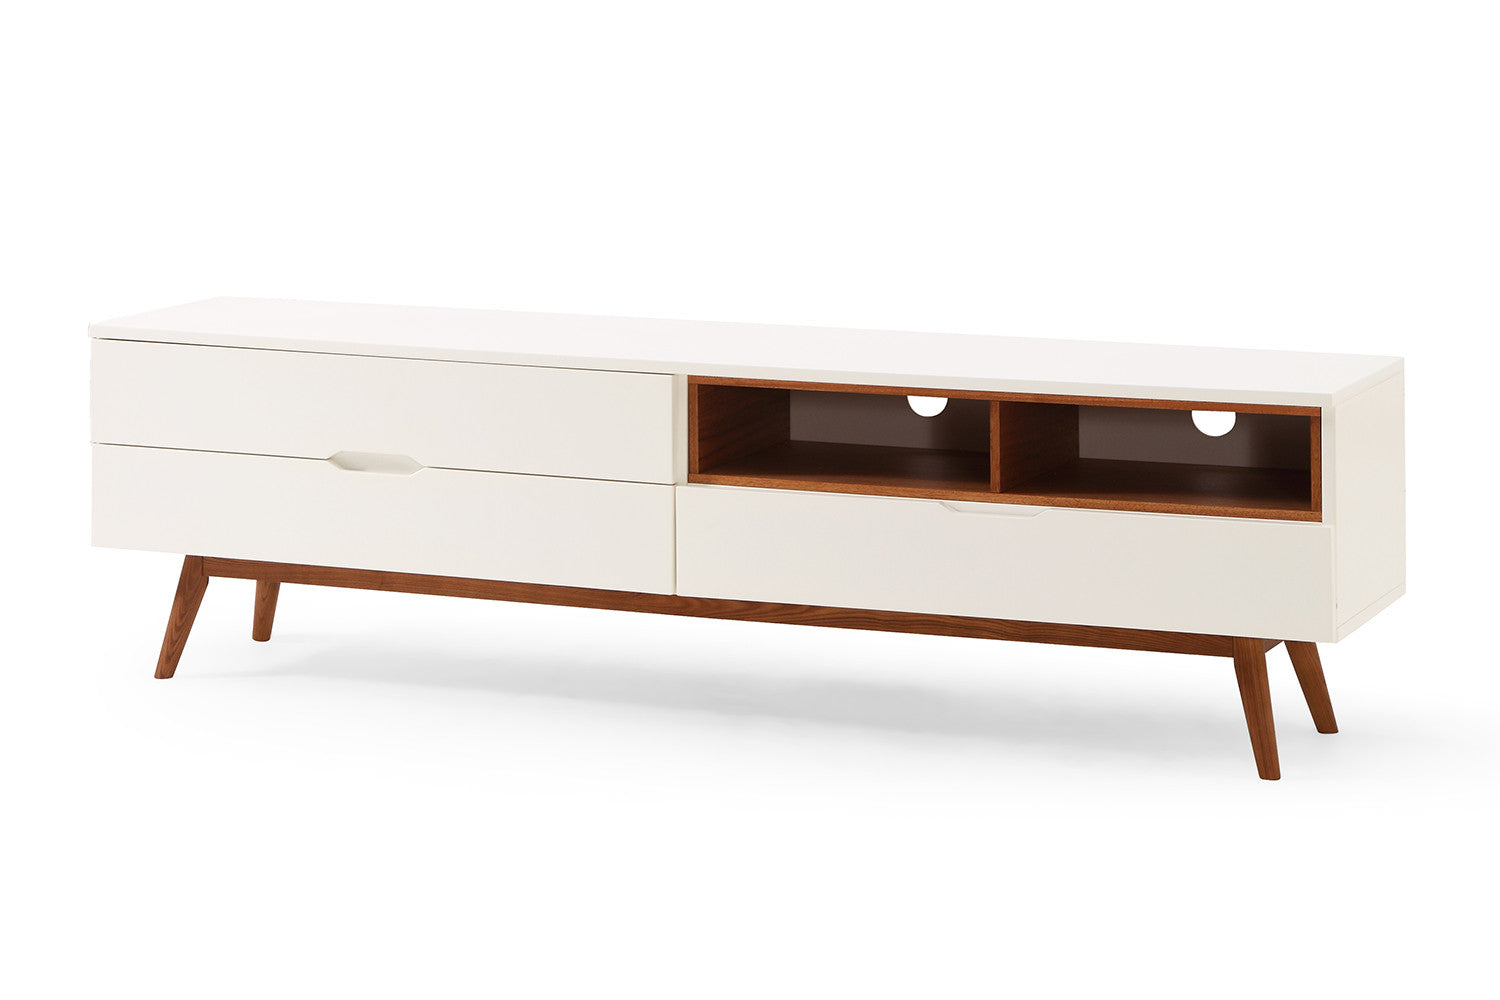 Meuble Tv Design Scandinave Lema Dewarens # Meuble Tv Design En Bois